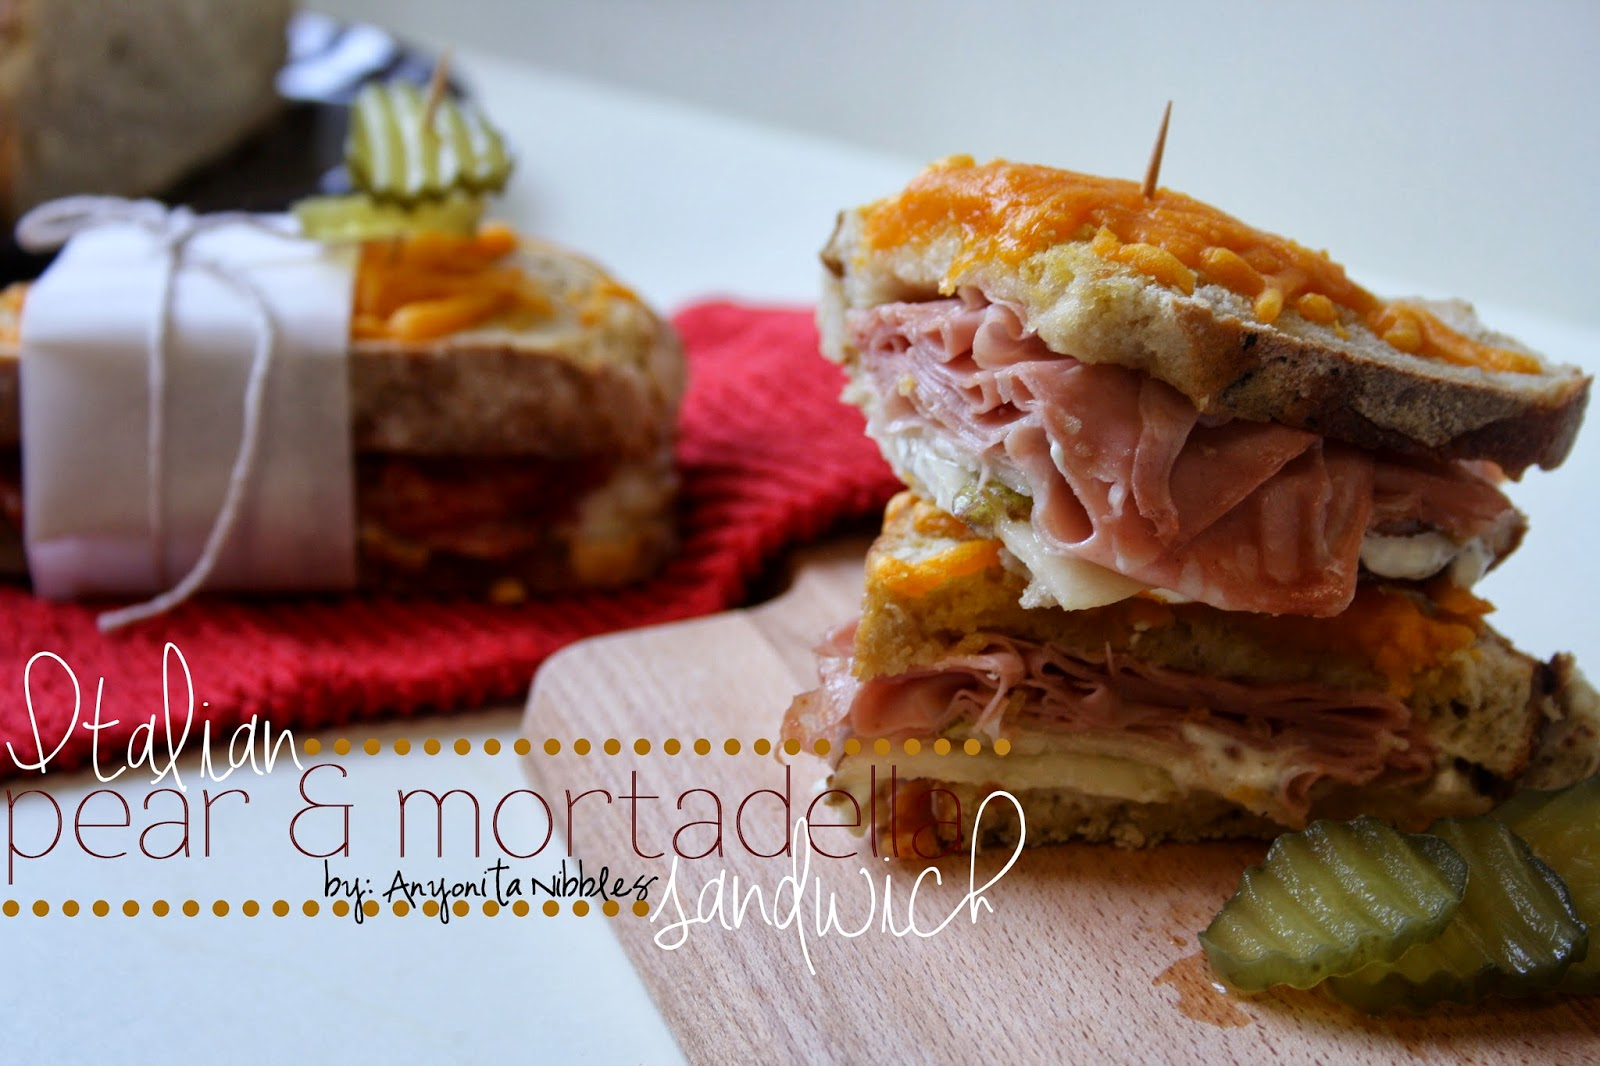 Italian Pear & Mortadella Sandwiches | Anyonita Nibbles | Her husband said this was the best sandwich he's had in a long time!